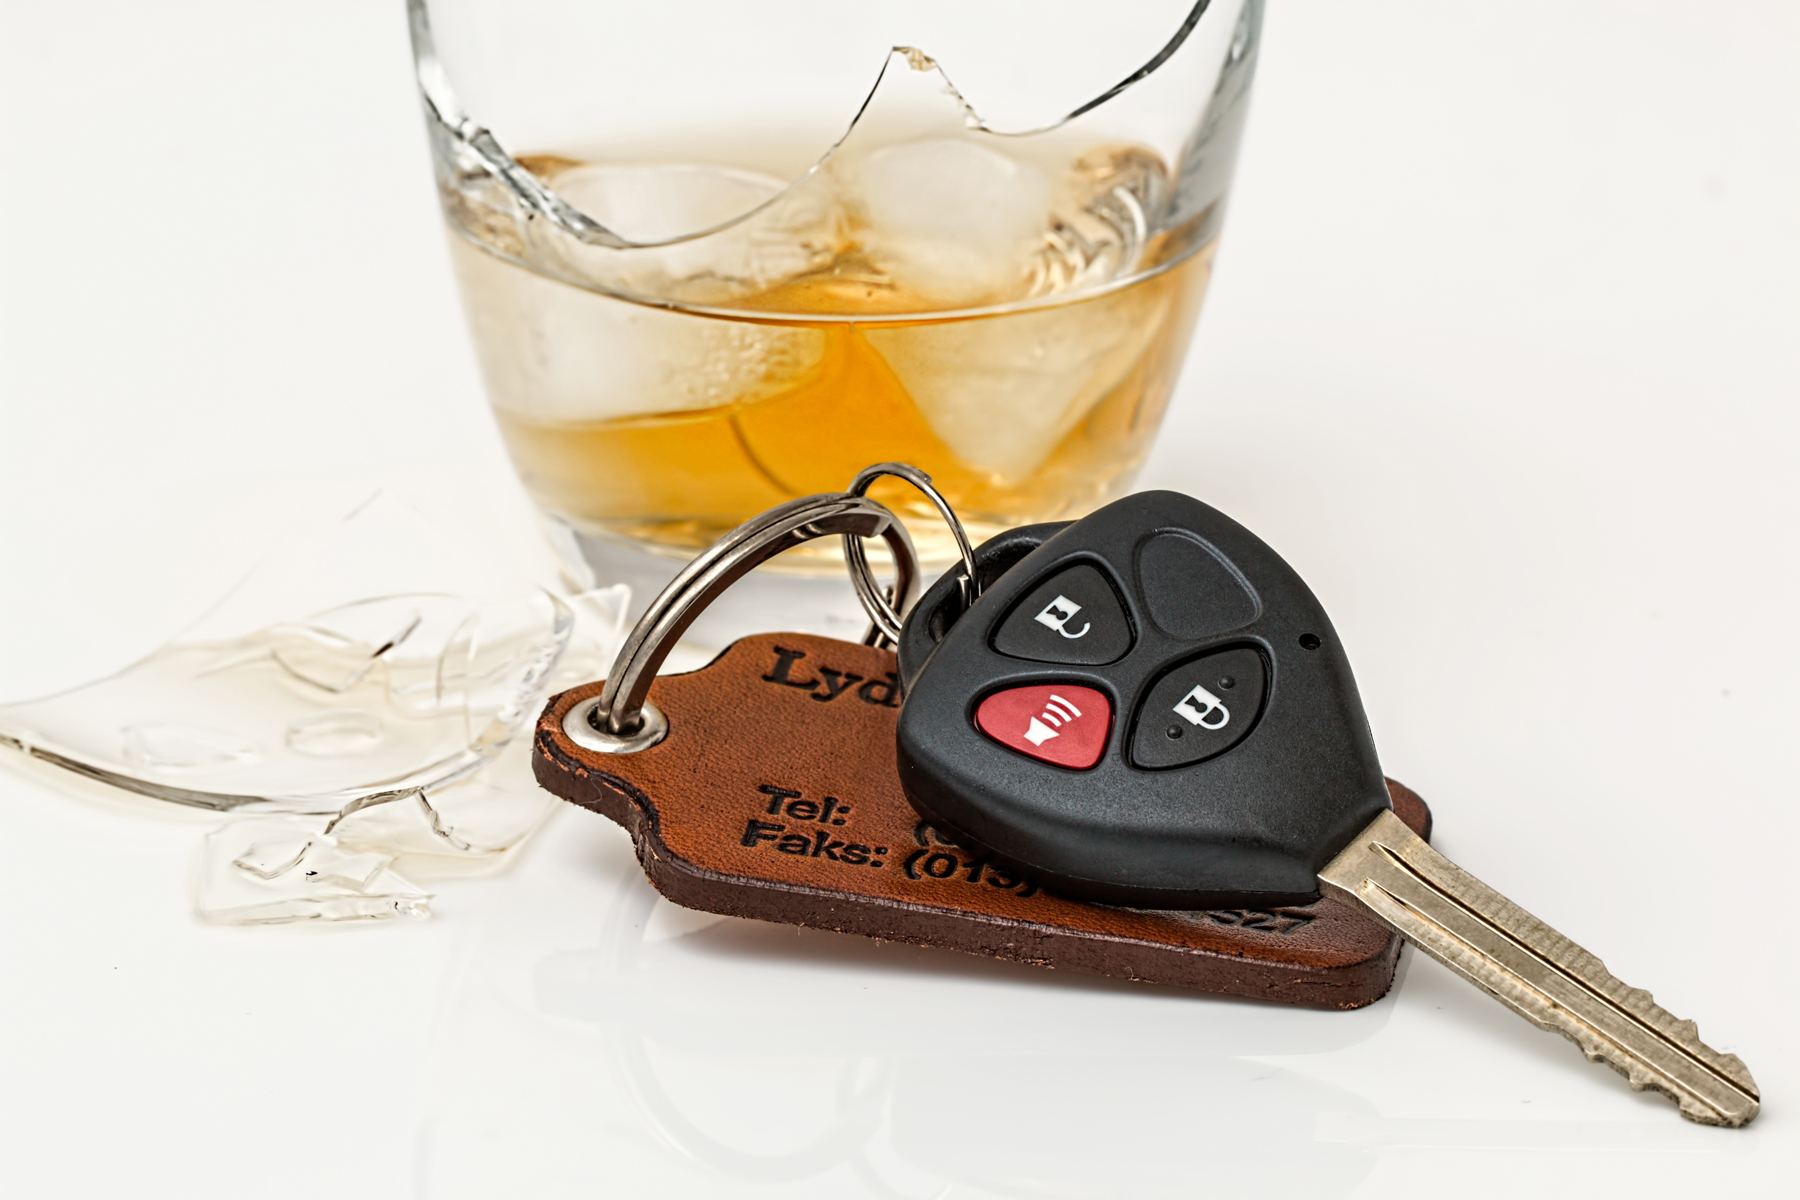 A glass of alcohol next to a pair of car keys